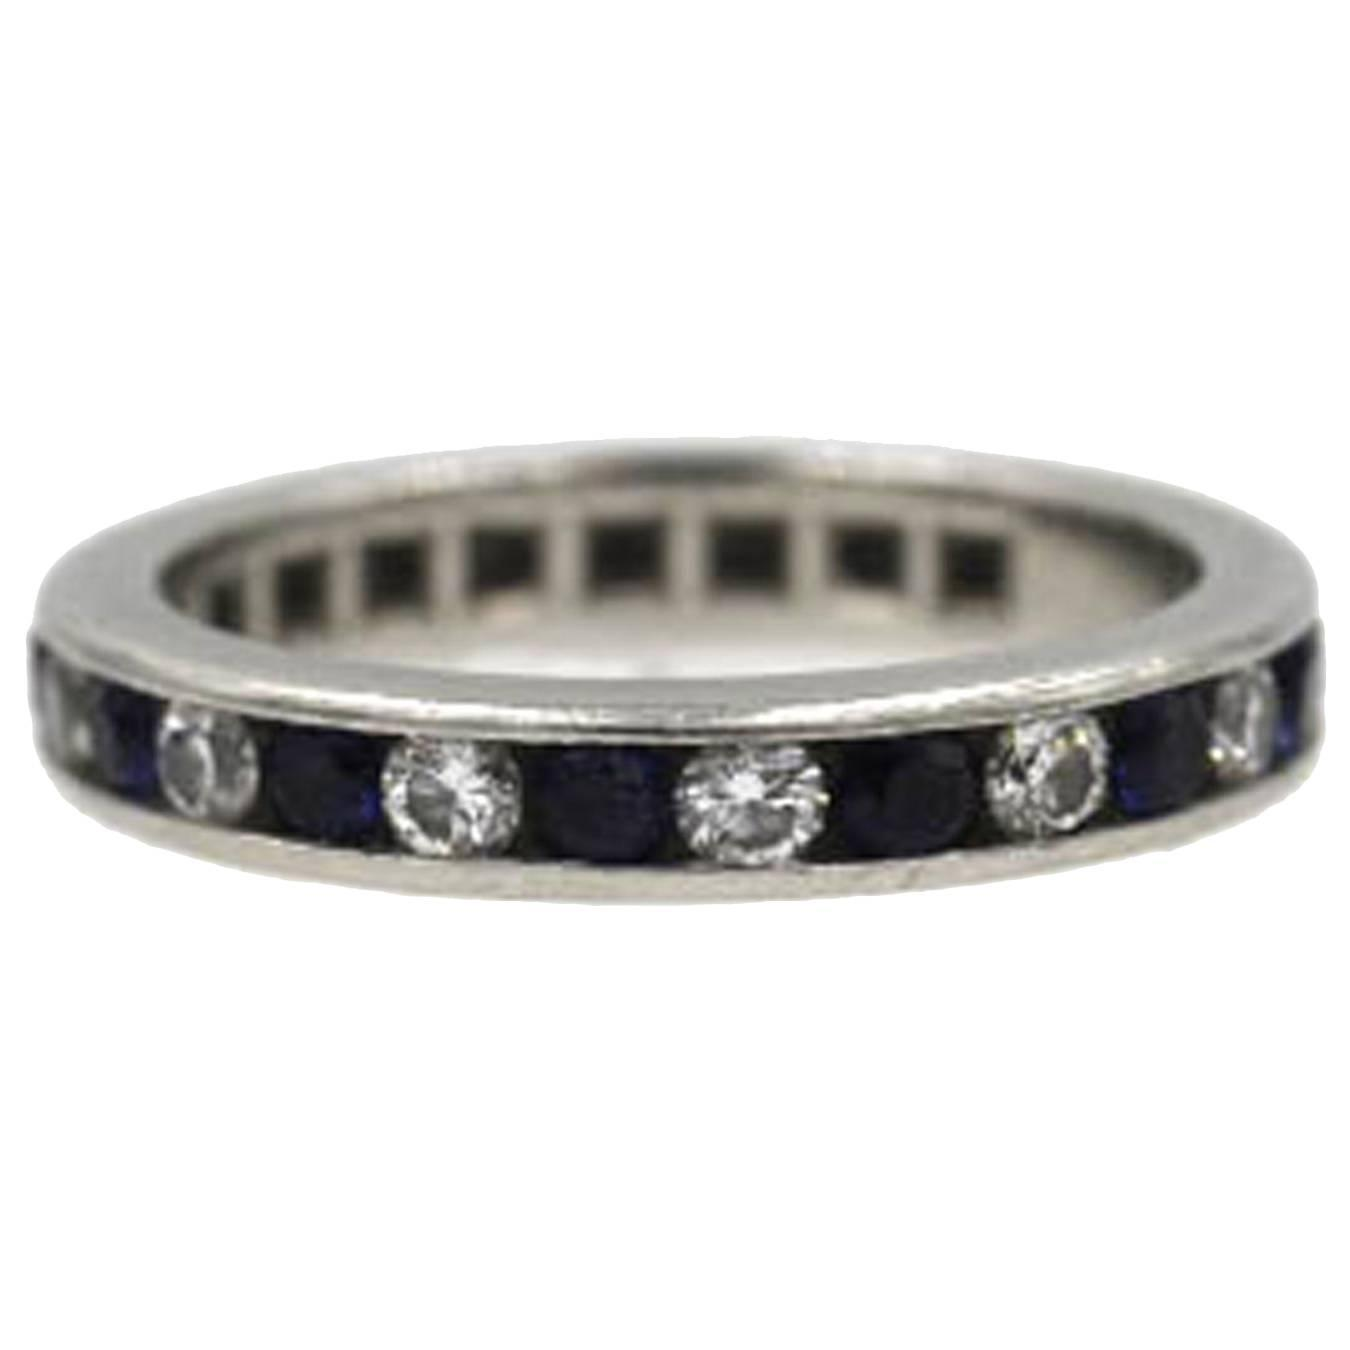 Tiffany and Co Sapphire Diamond Platinum Wedding Band Ring at 1stdibs